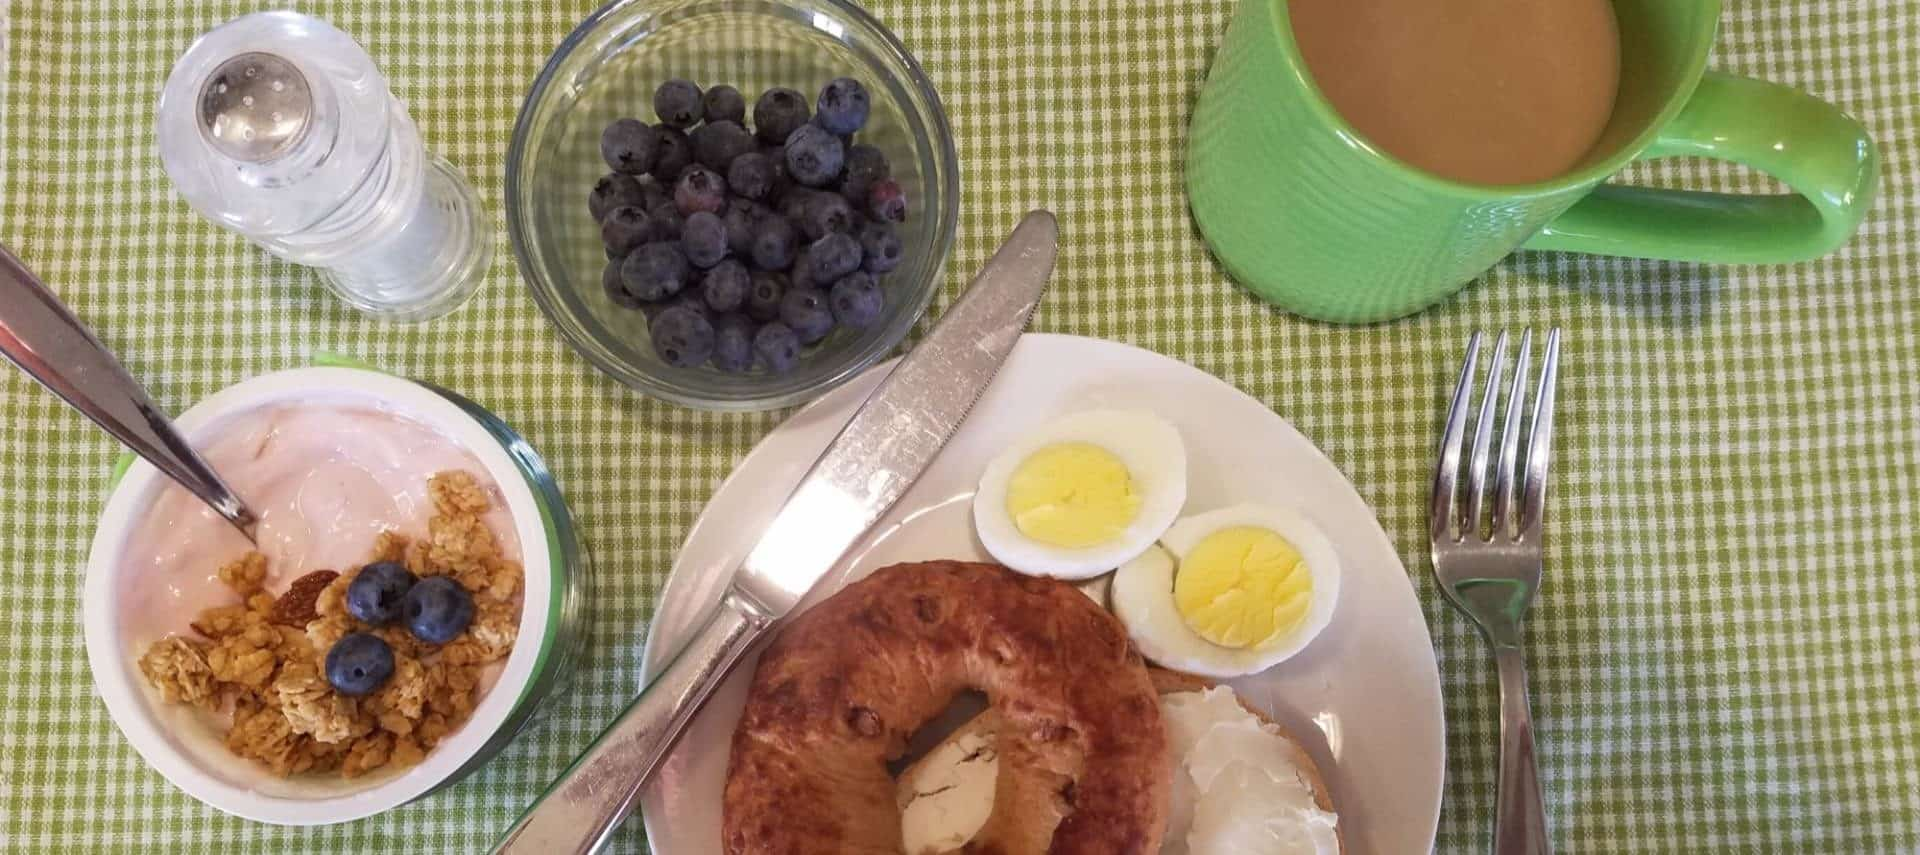 View from above looking down at a bagel with cream cheese, hard boiled egg cut in half, yogurt with granola and blueberries, bowl of blueberries, and green cup with coffee